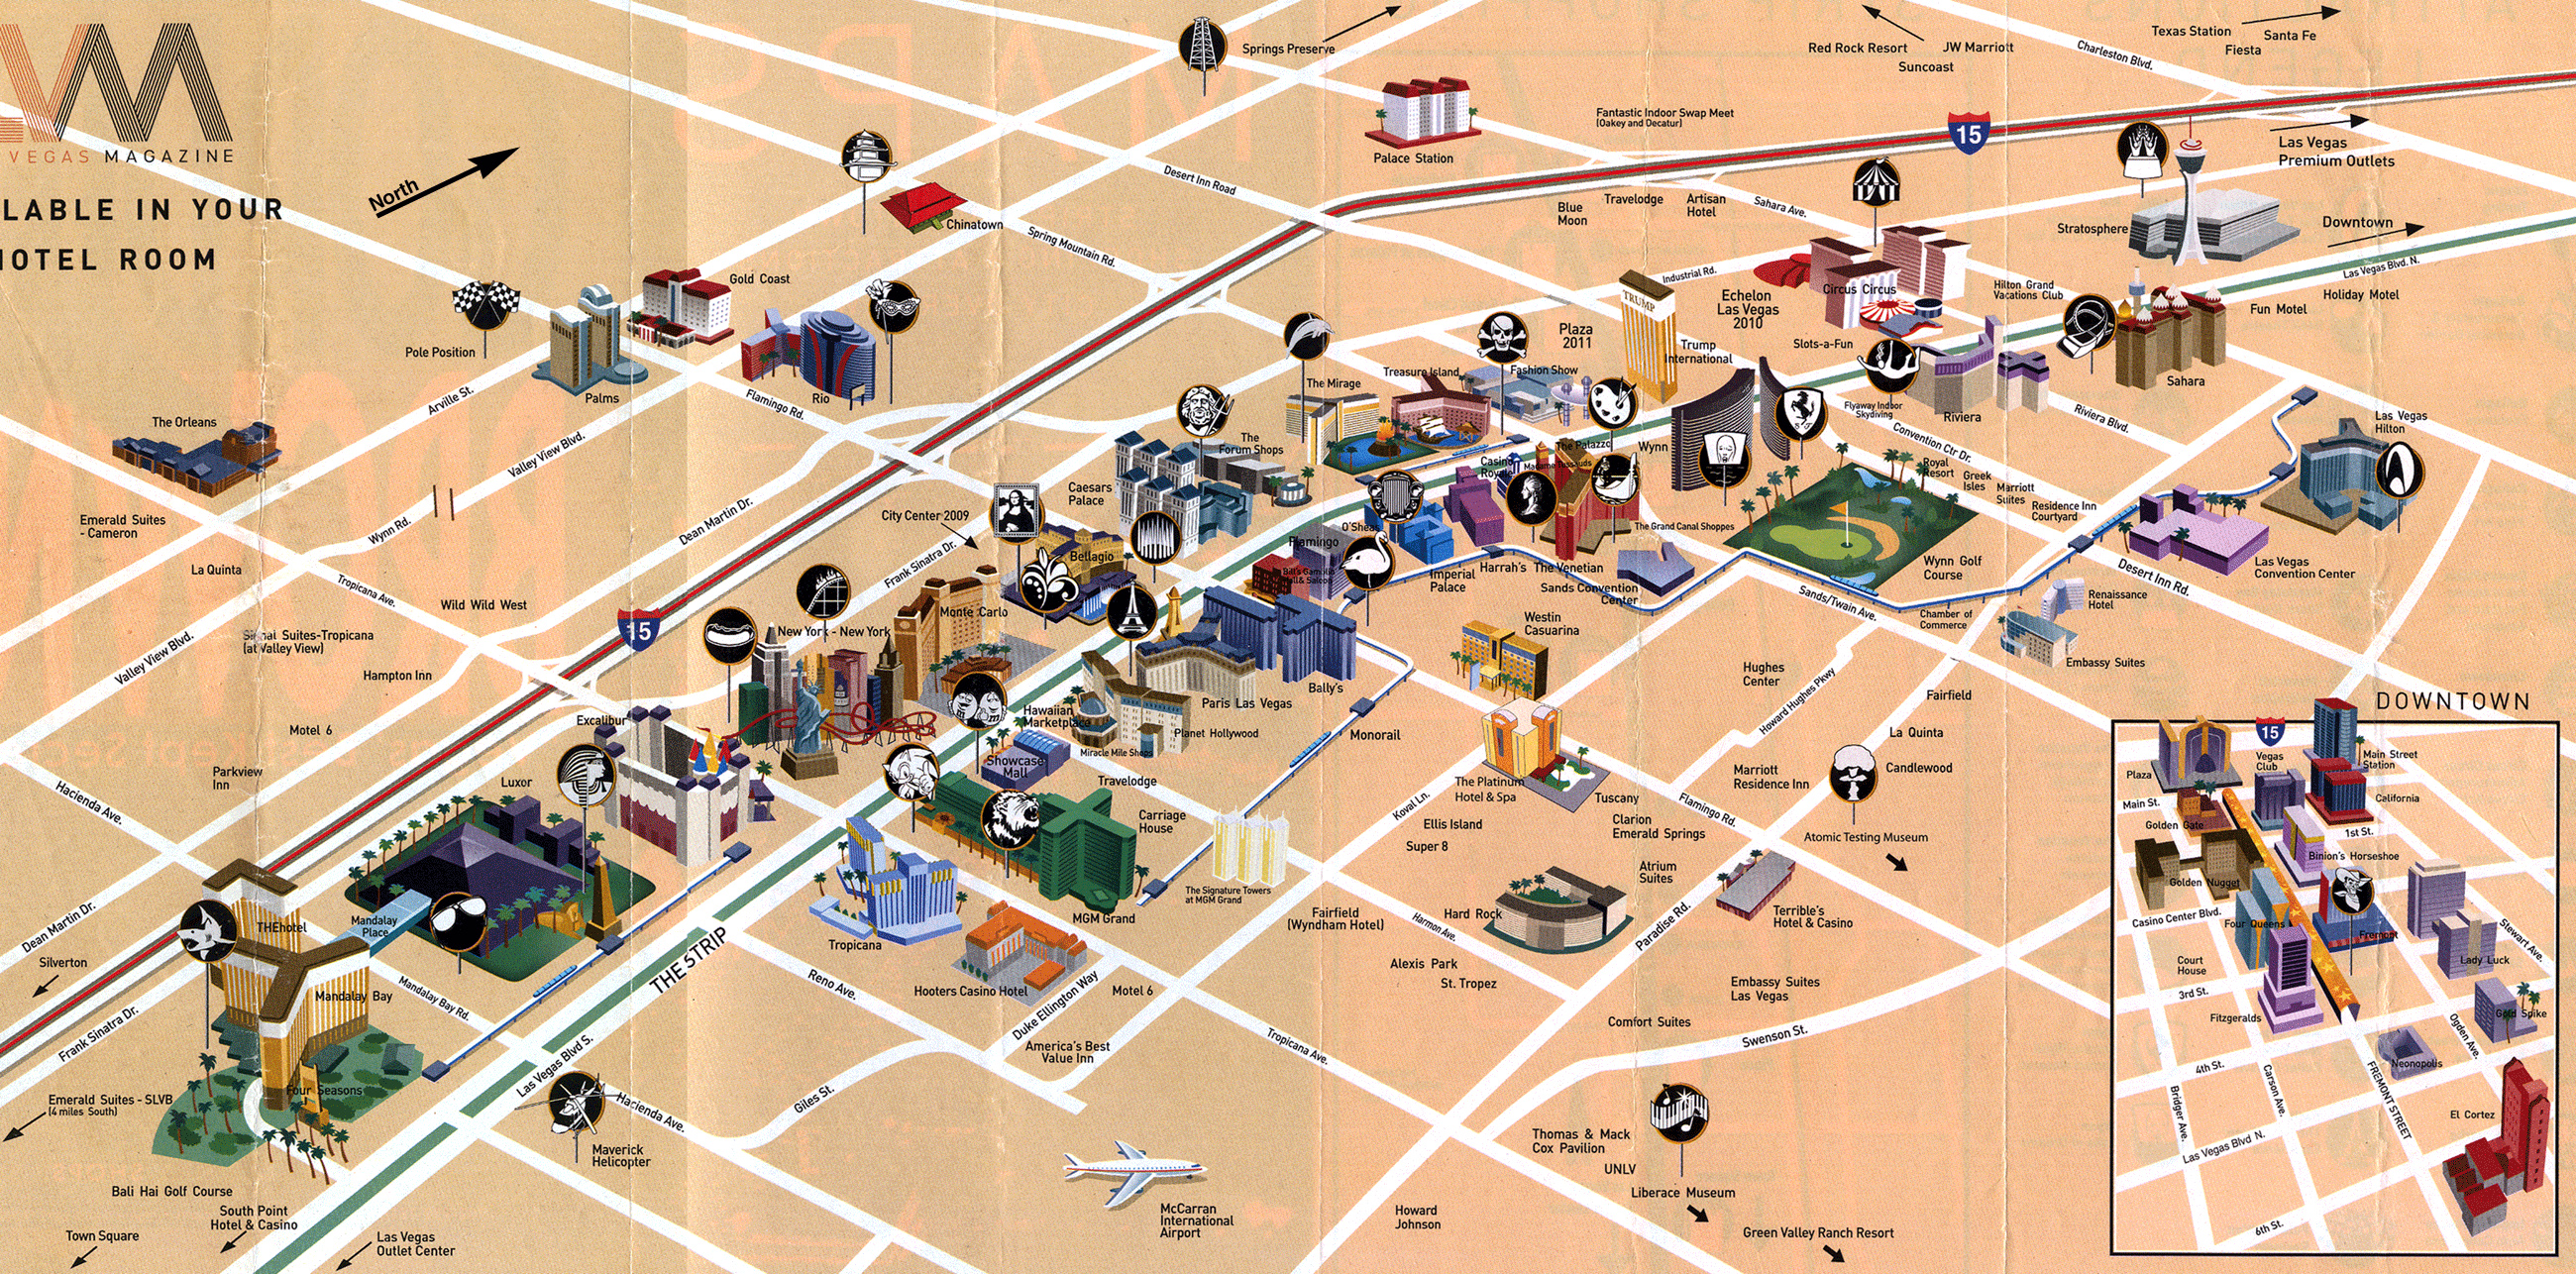 Large detailed tourist map of Las Vegas city | Vidiani.com | Maps of on detailed map of yosemite national park, detailed map of grand canyon, detailed map of the strip, detailed map of buffalo, detailed map of the gulf coast, detailed map of marshall islands, detailed map of utah lake, detailed map of vegas strip, detailed map of milwaukee, detailed map of northern va, detailed map of the bay area, detailed map of riyadh, detailed map of henderson, detailed map of bangor maine, detailed map of ohio state university, detailed map of tampa area, detailed map of eastern north carolina, detailed map of monument valley, detailed map of orlando area, detailed map of genoa,